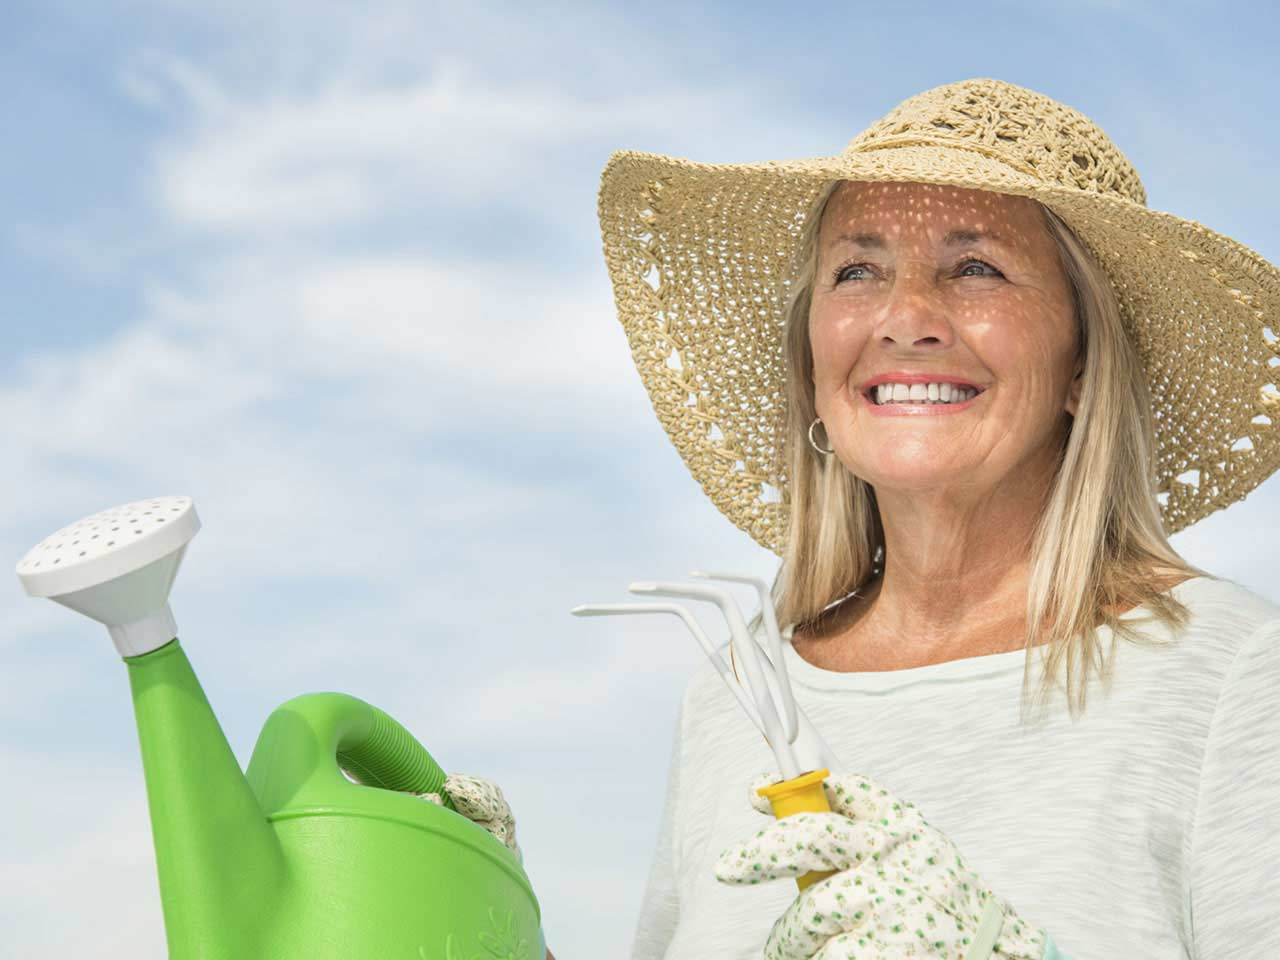 Senior lady gardening wearing sunhat for protection